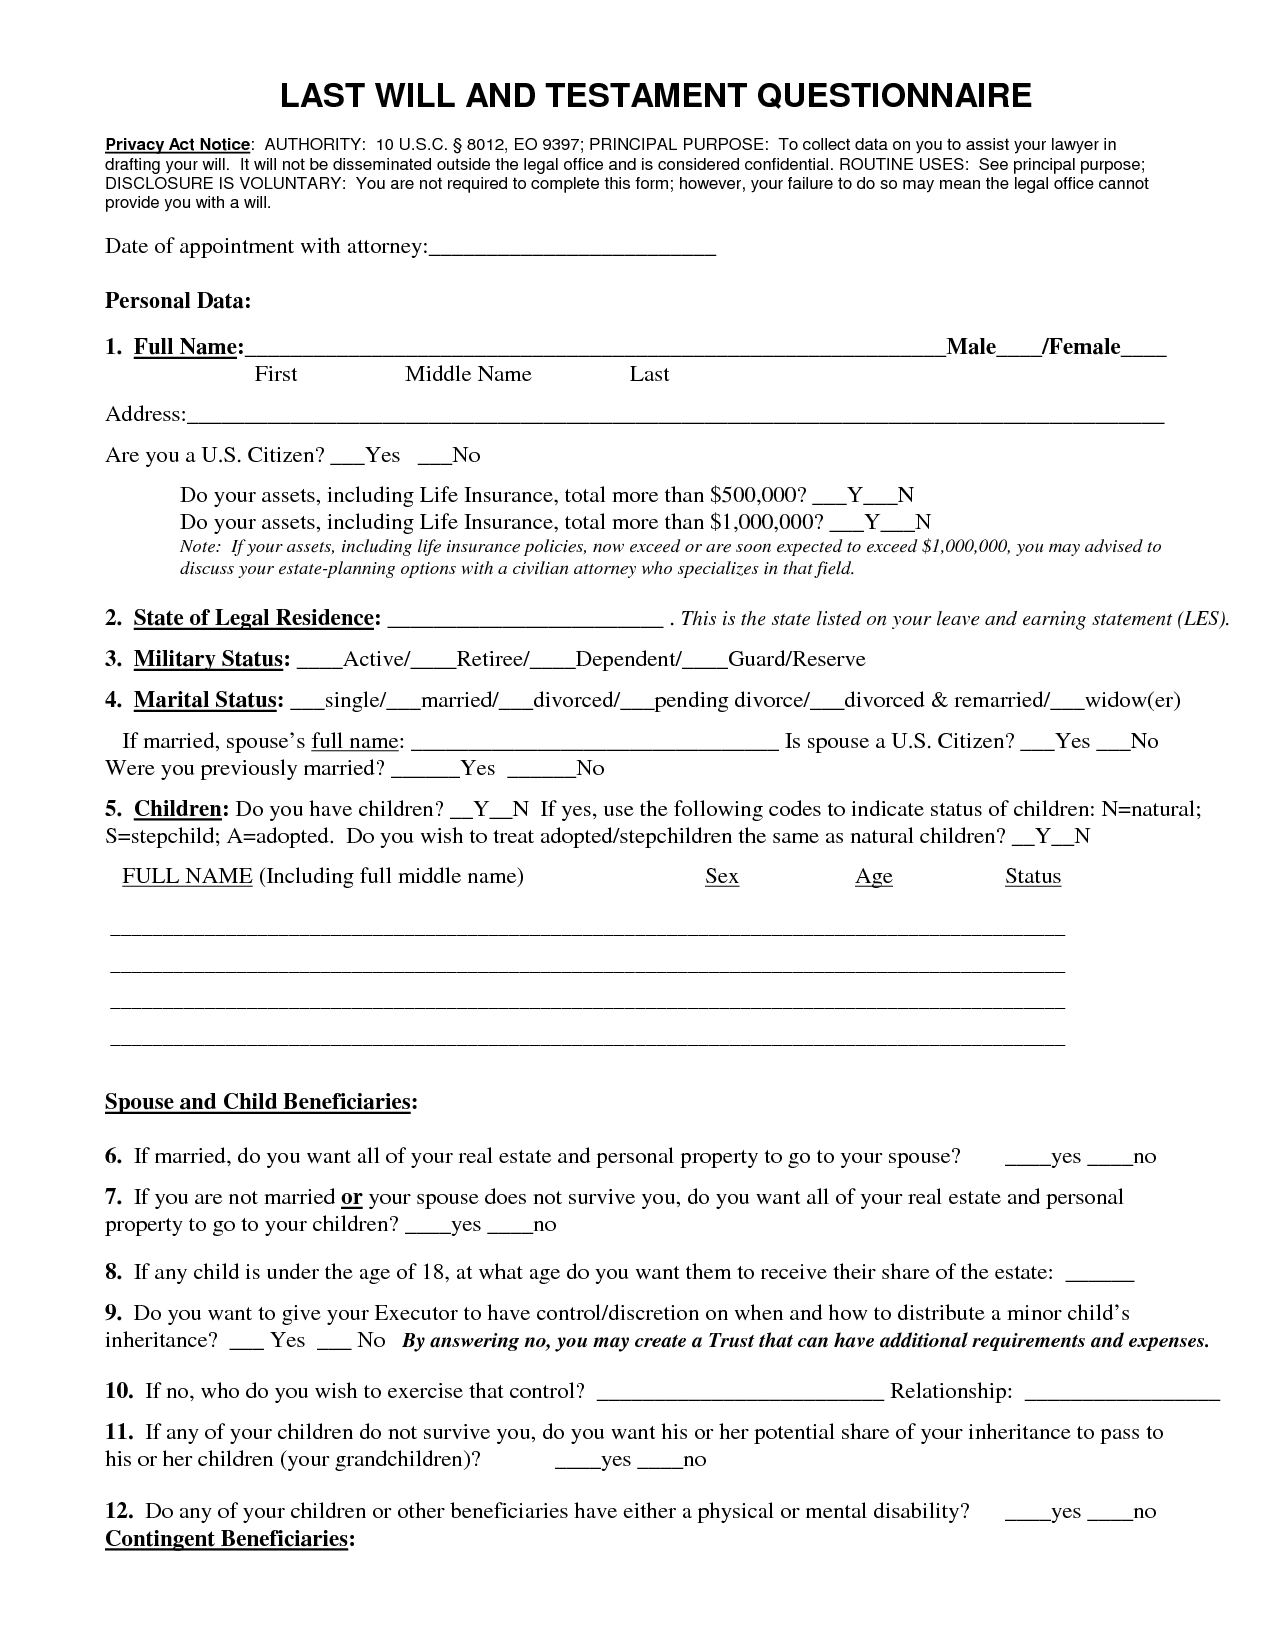 Pets Animal Breed | Az Last Will And Testament Blank Forms Free - Free Printable Last Will And Testament Blank Forms